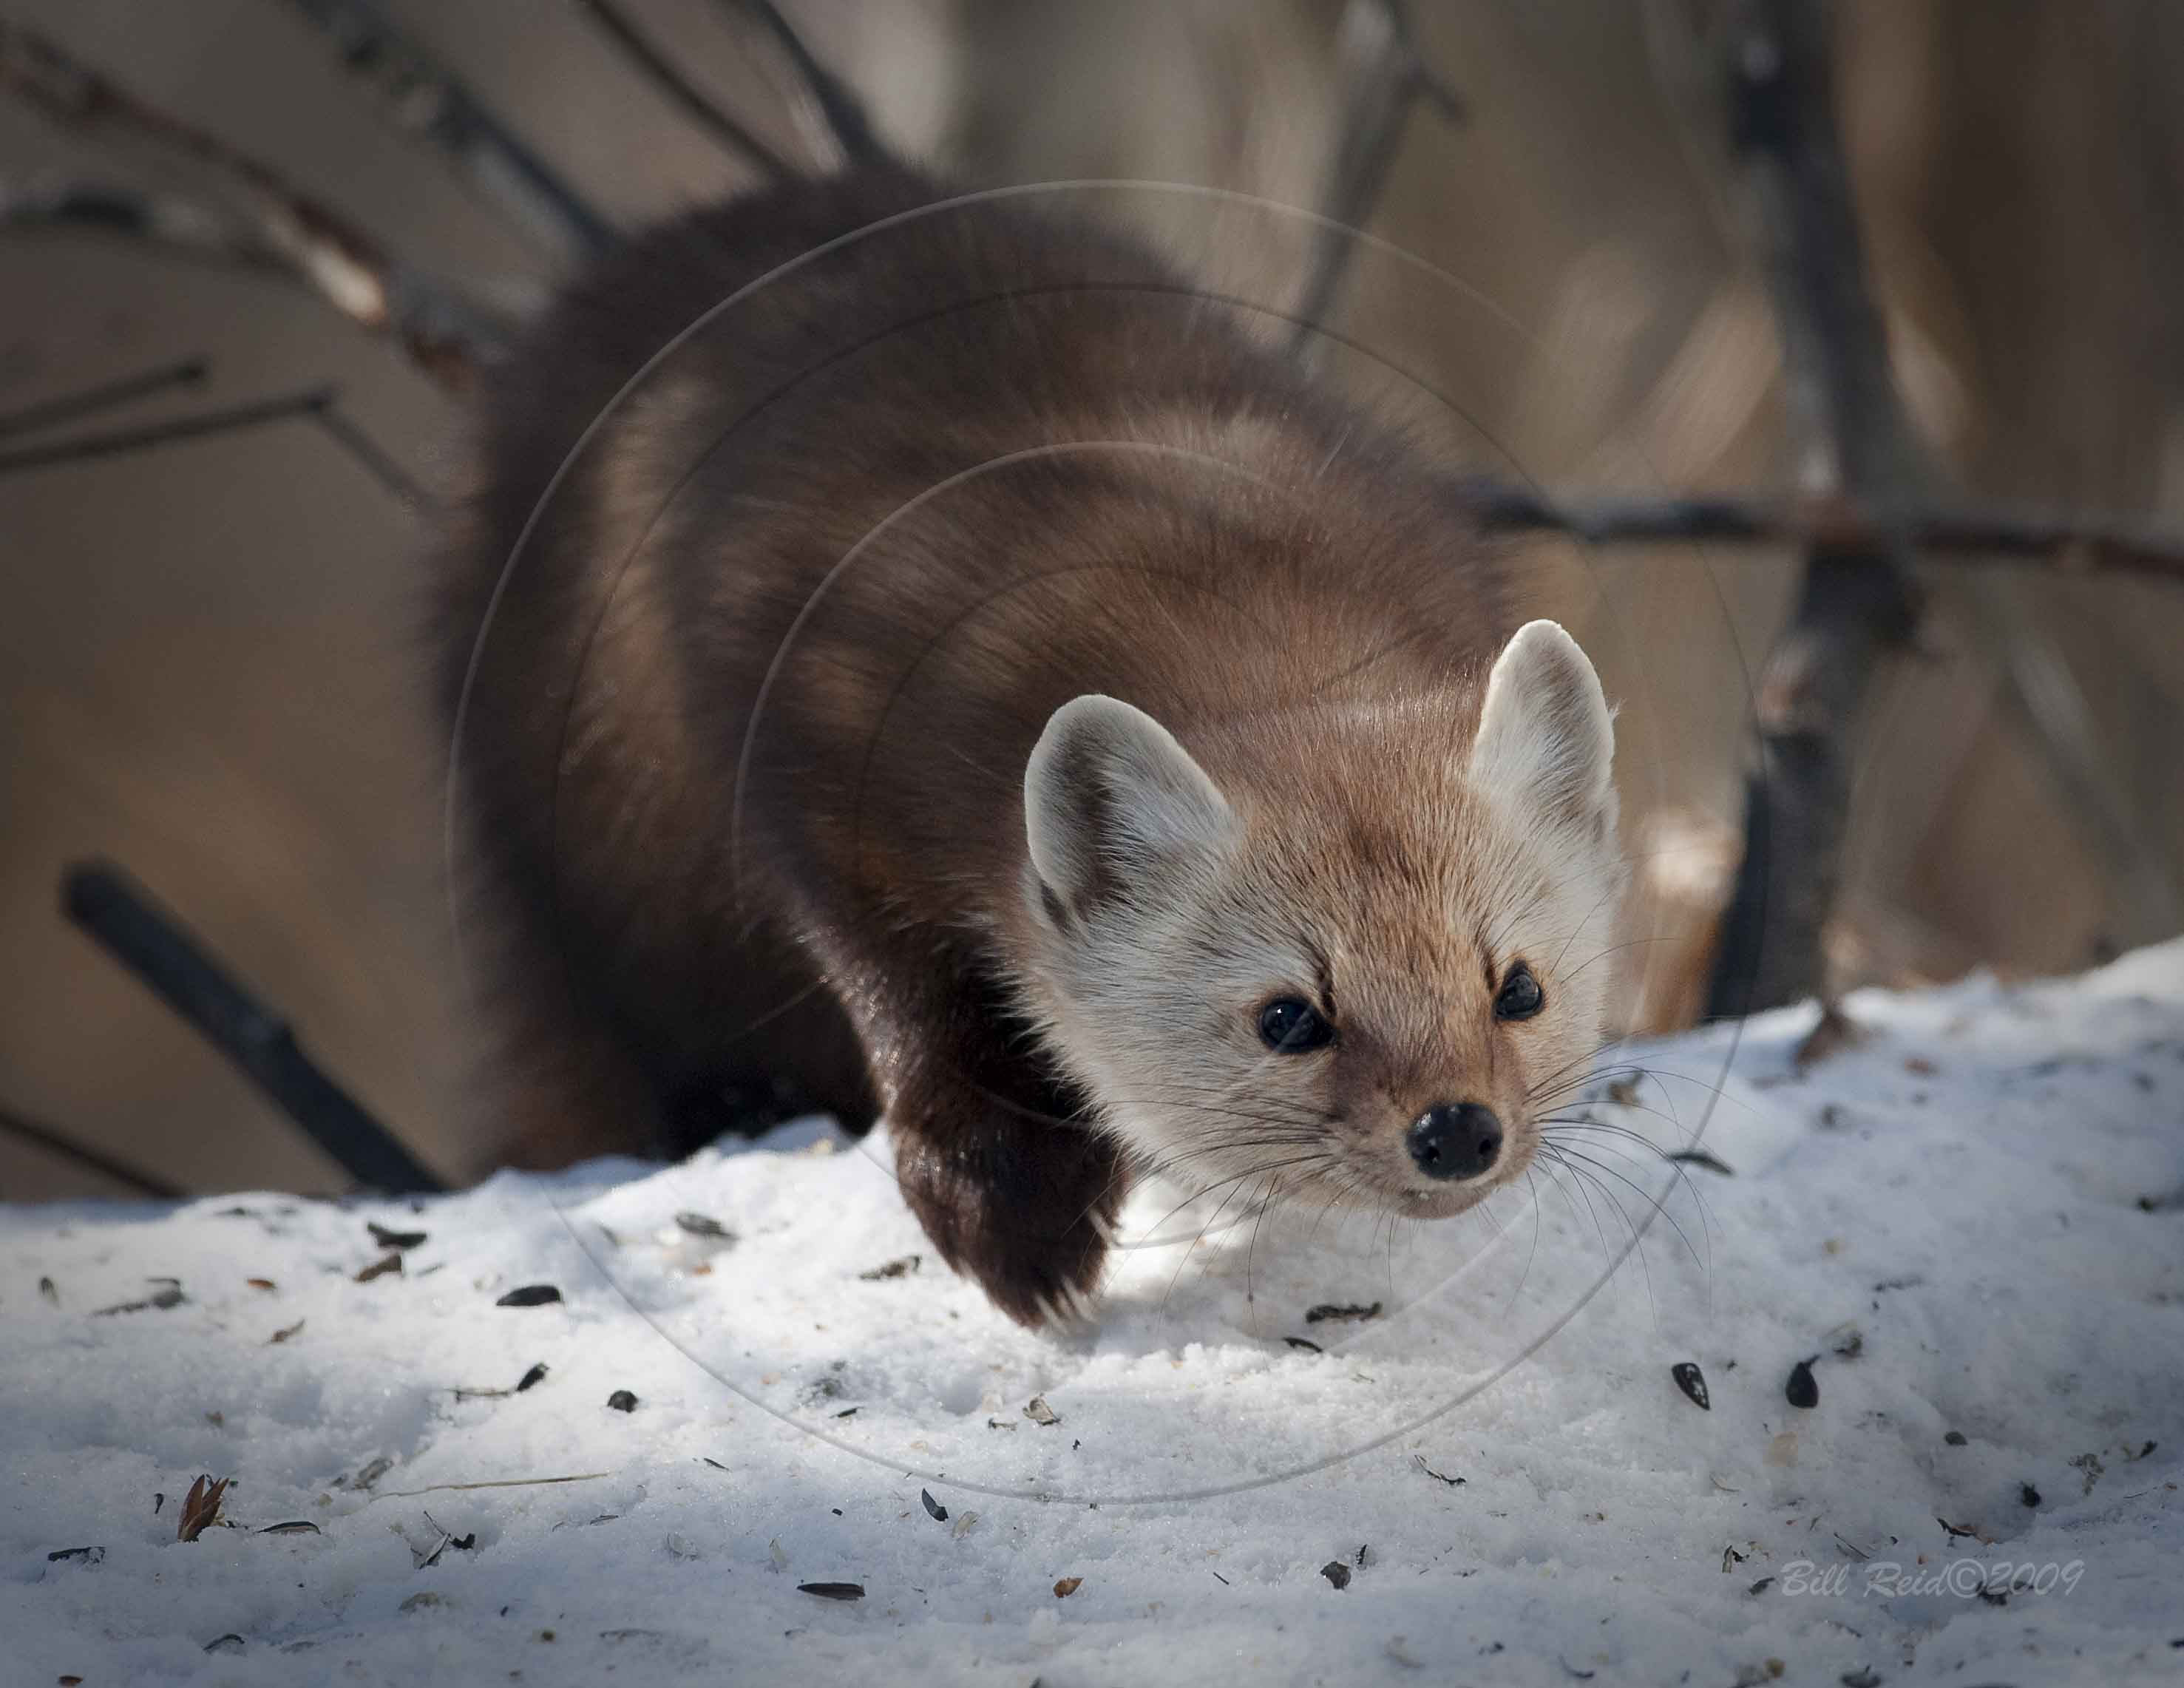 Pictures of a pine marten M A Creative Community for Fans, Photos and Fun